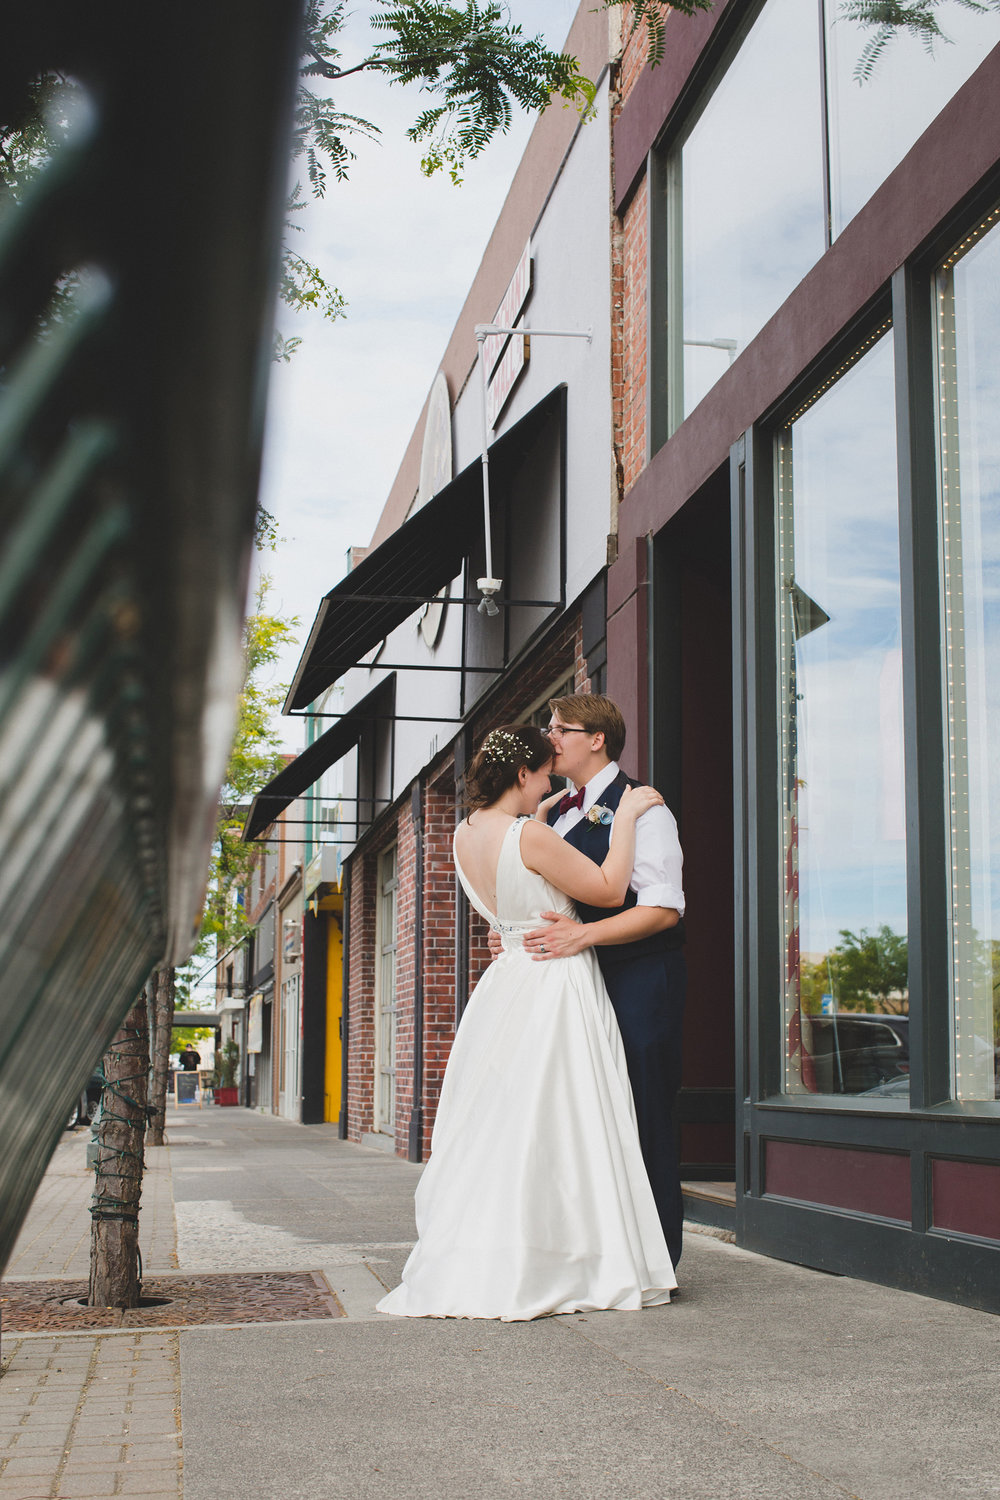 Tri Cities Wedding Photographer_Karis and Adrienne_Church wedding_Downtown Kennewick 2